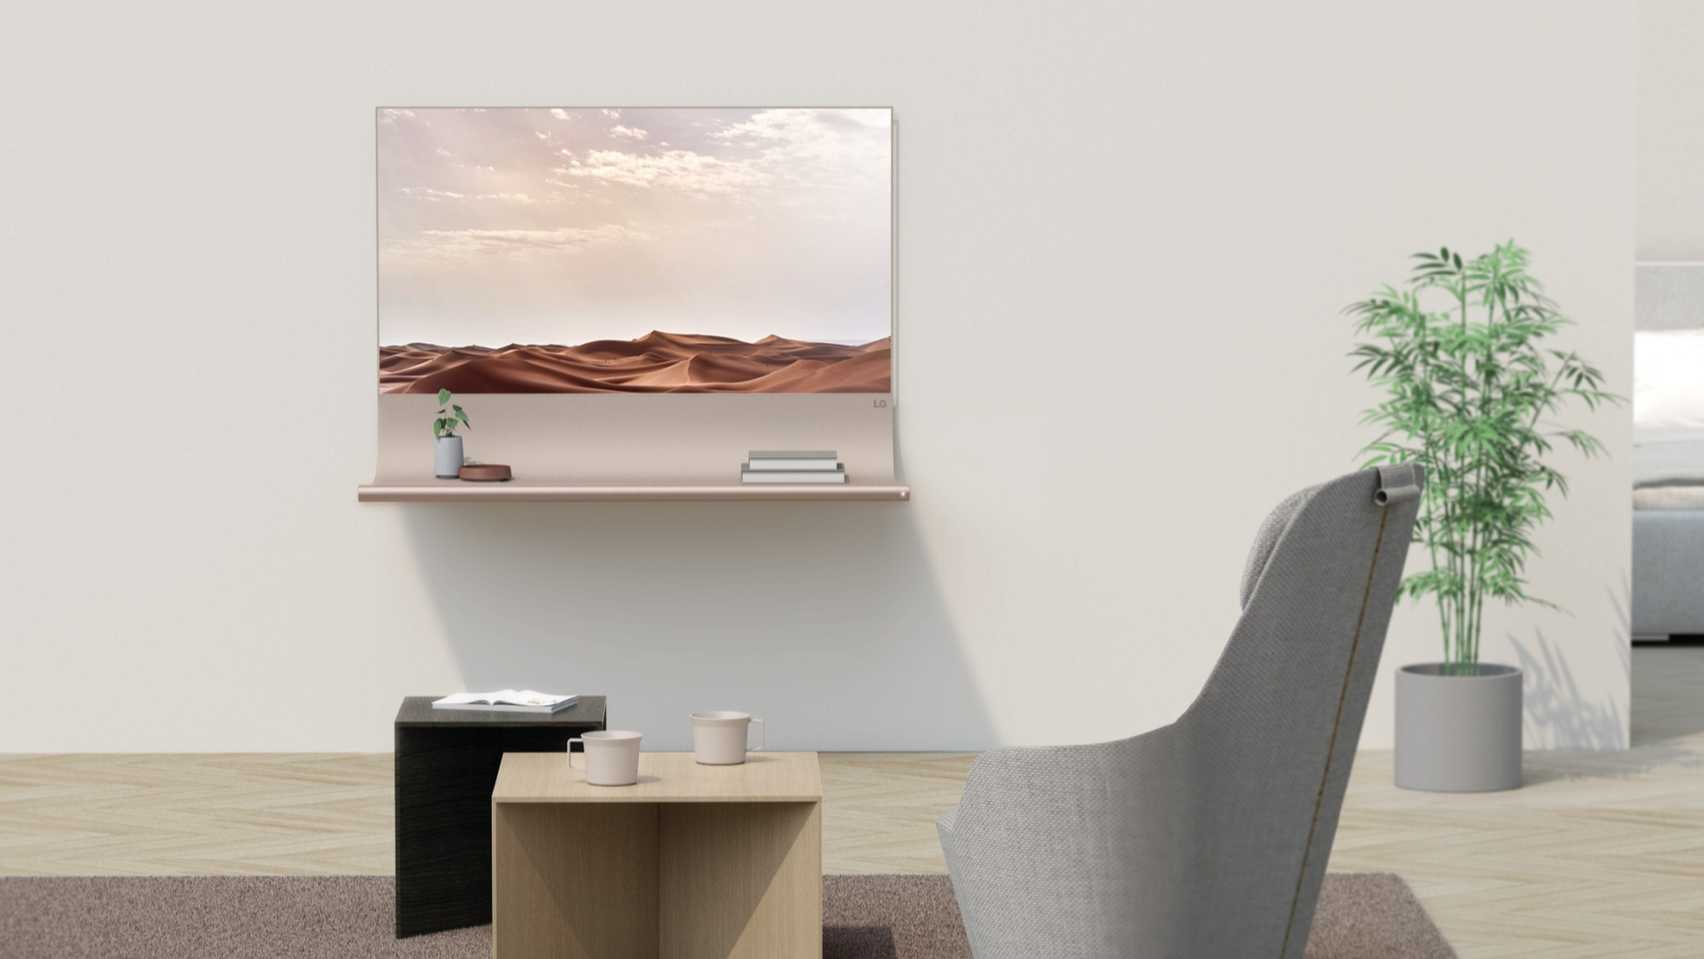 Scroll by Richard Bone TV and shelf designed for the OLED Go! competition from Dezeen and LG Display